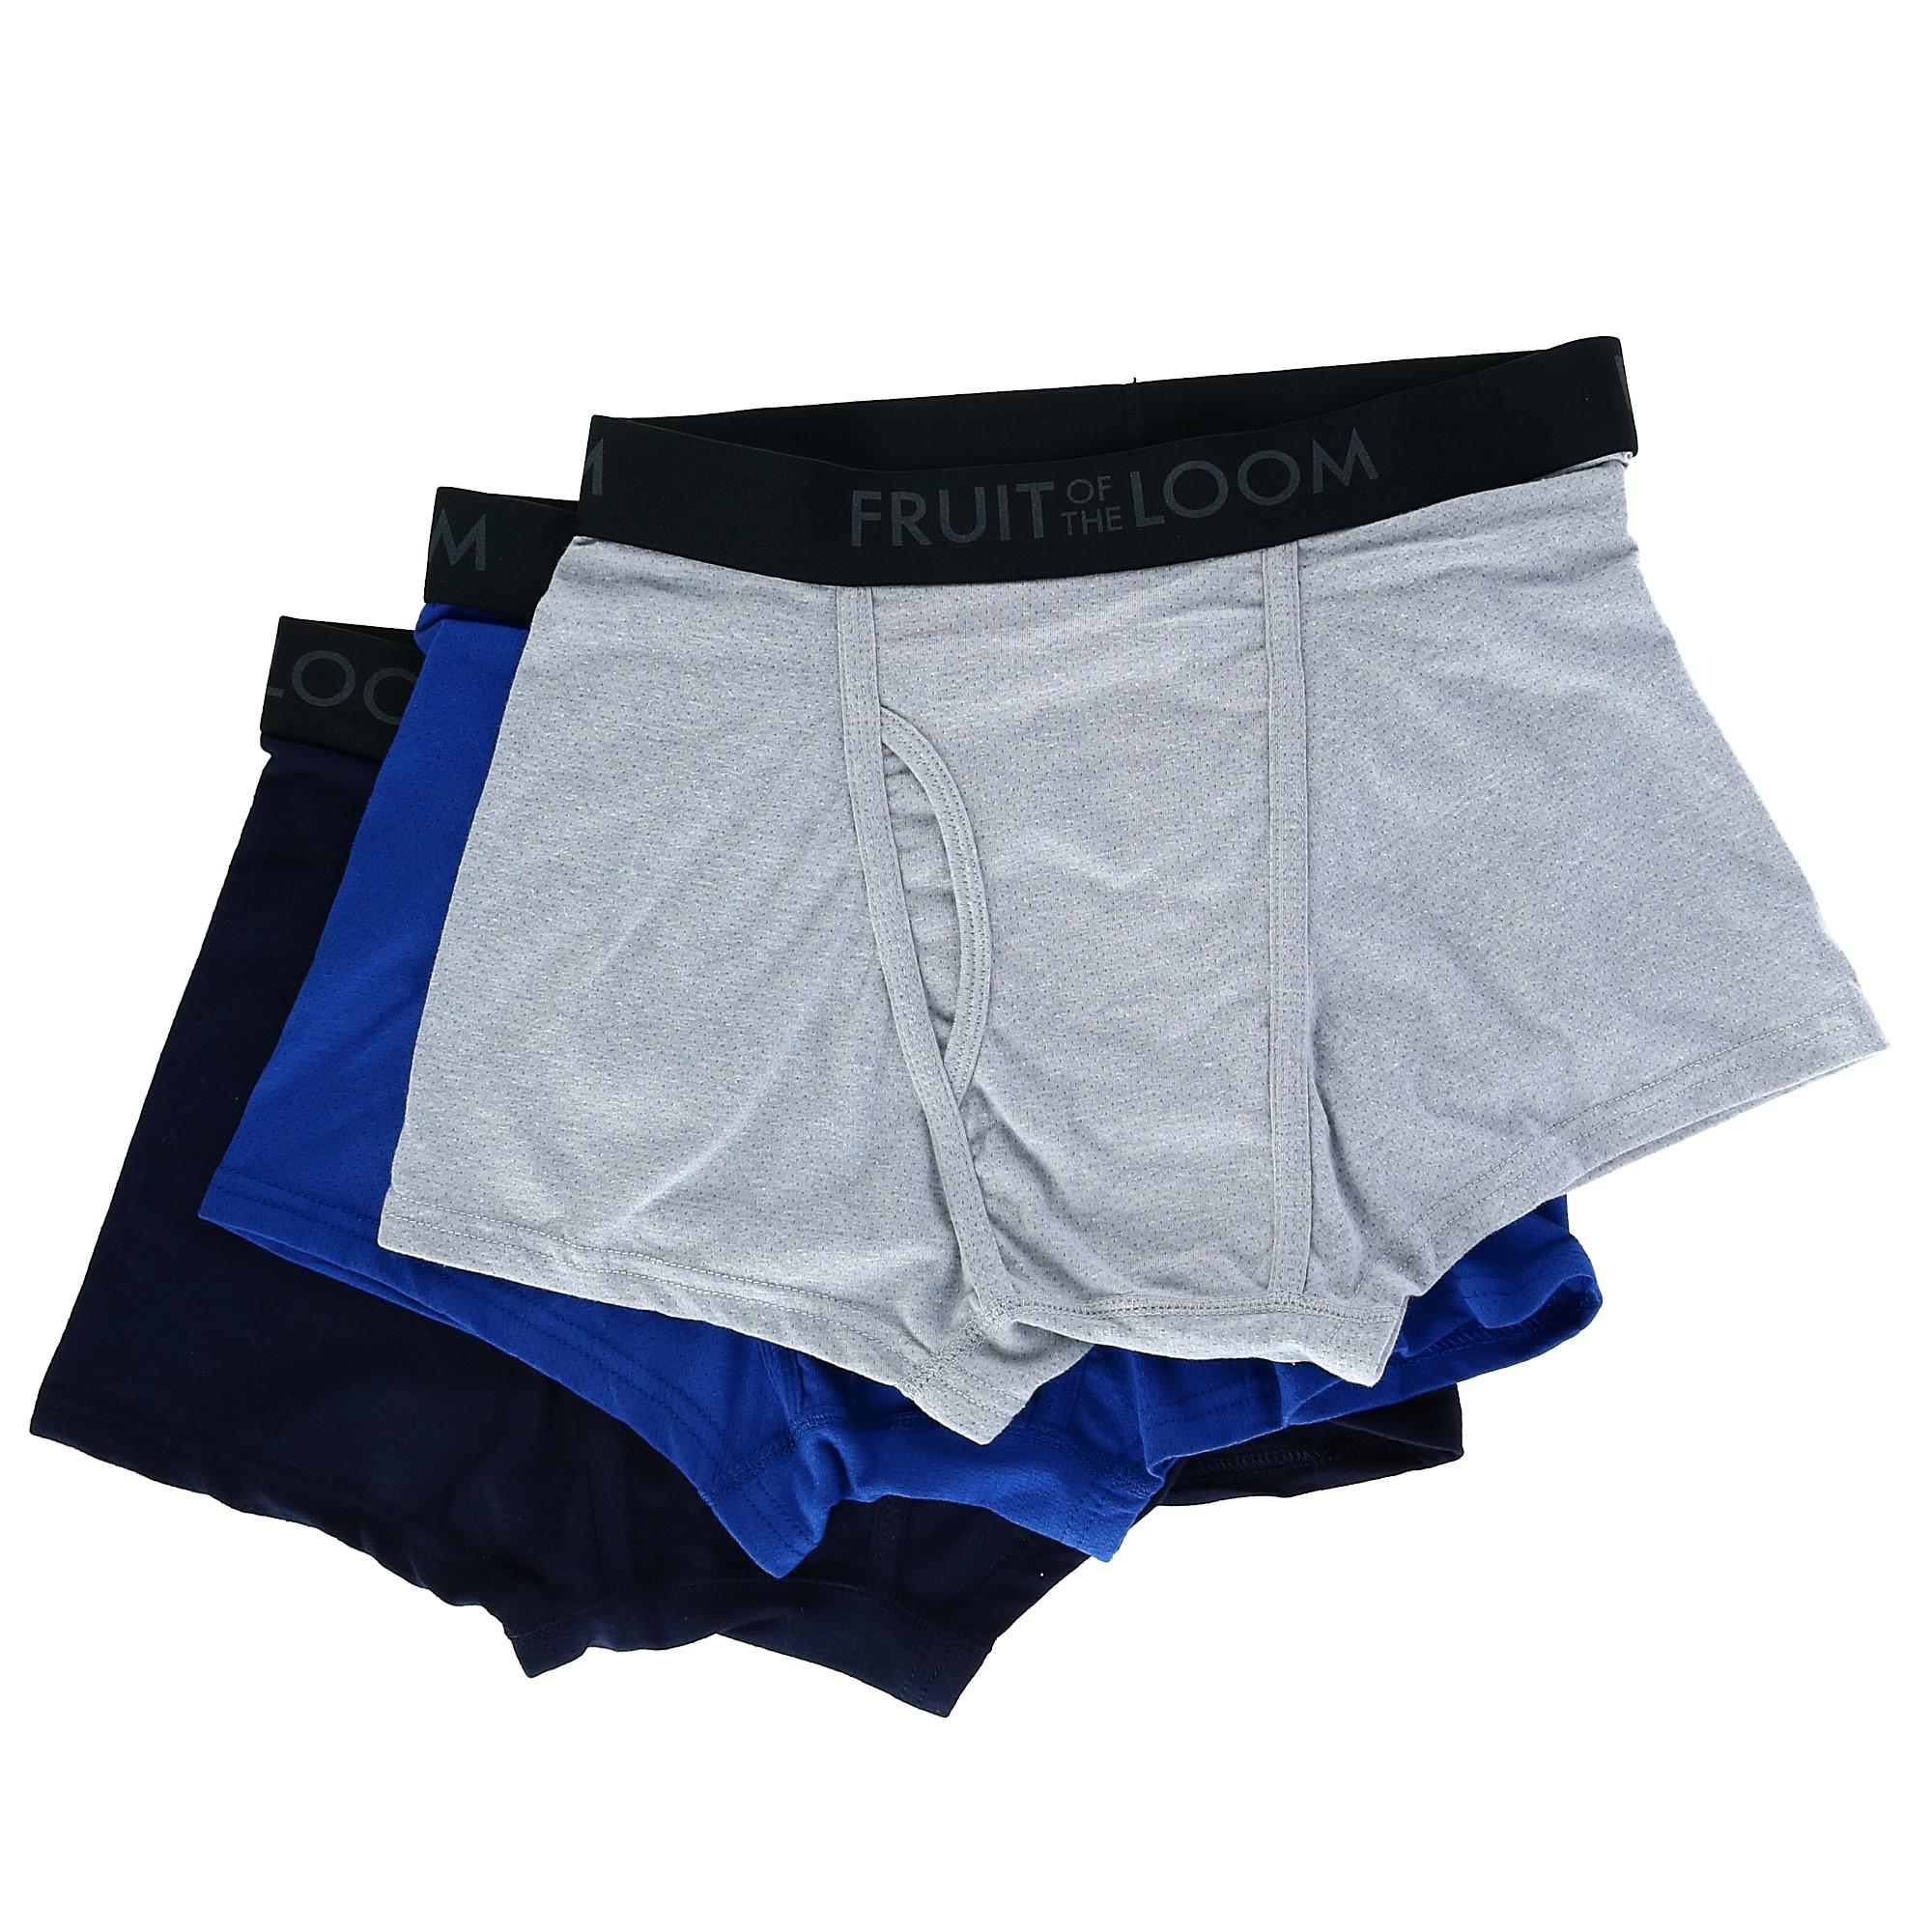 ba9f1148bf68 New Fruit of the Loom Men's Breathable Short Leg Boxer Brief (3 Pair ...